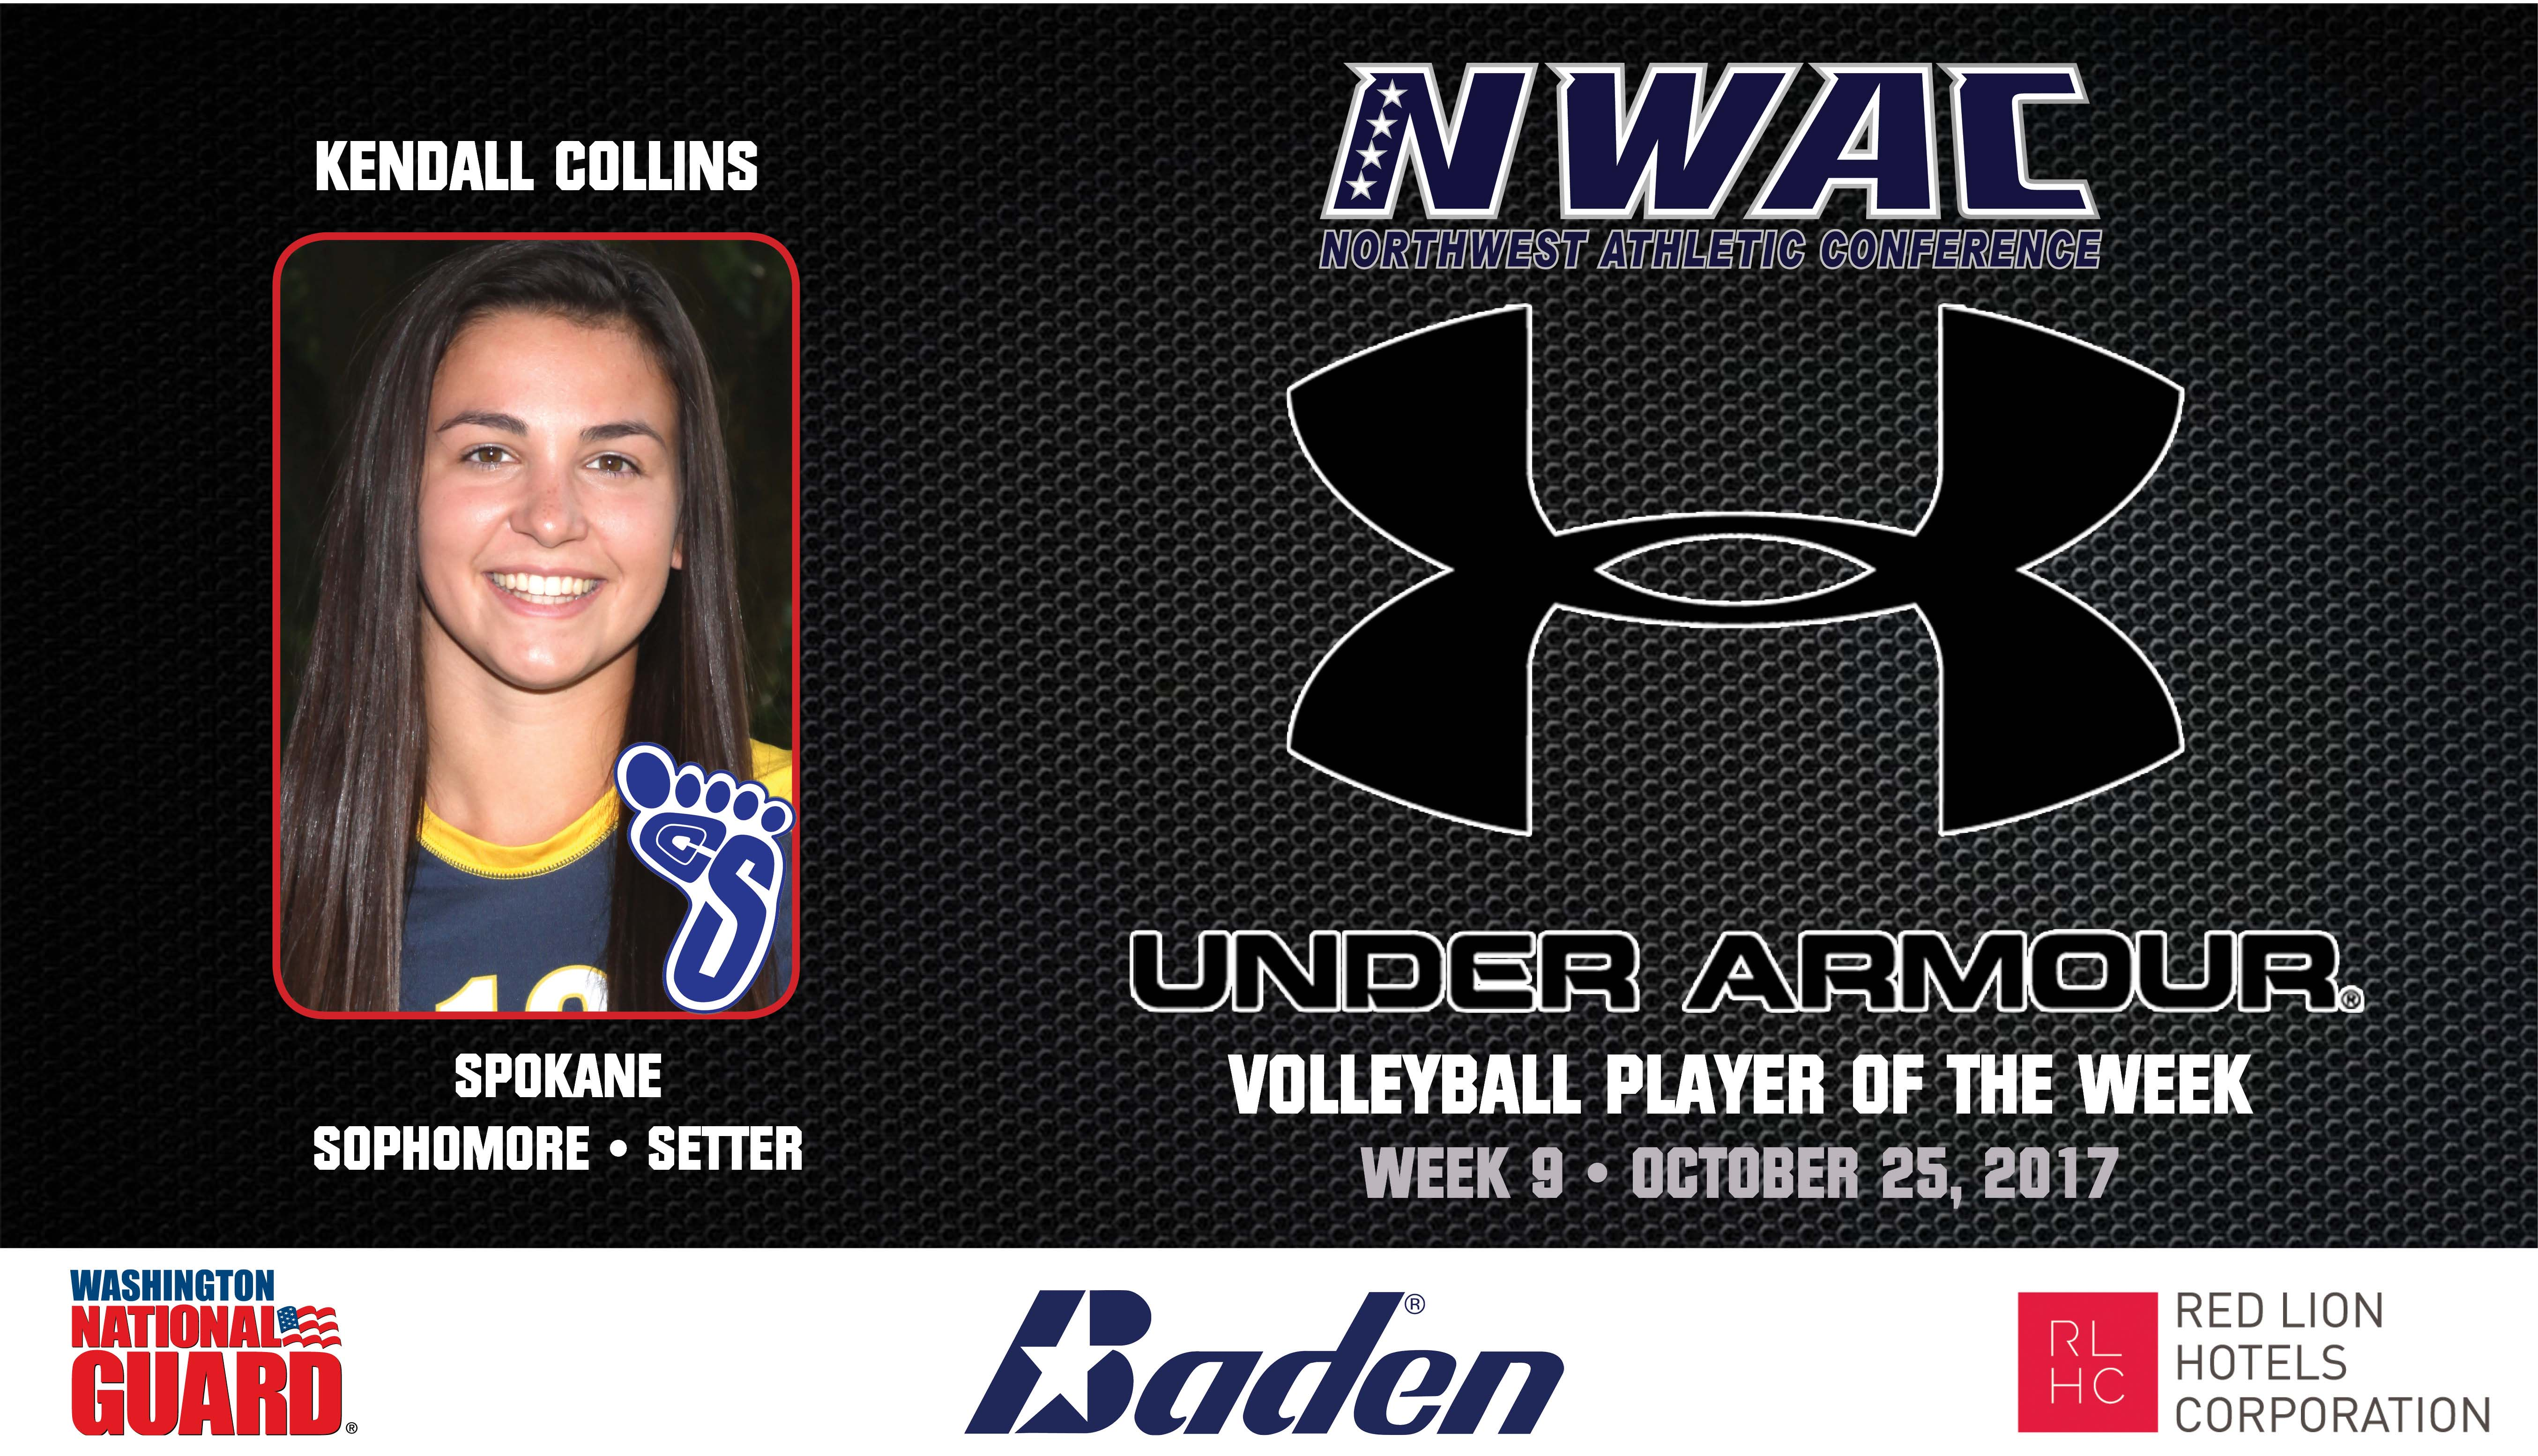 Kendall Collins Under Armour Player of the Week